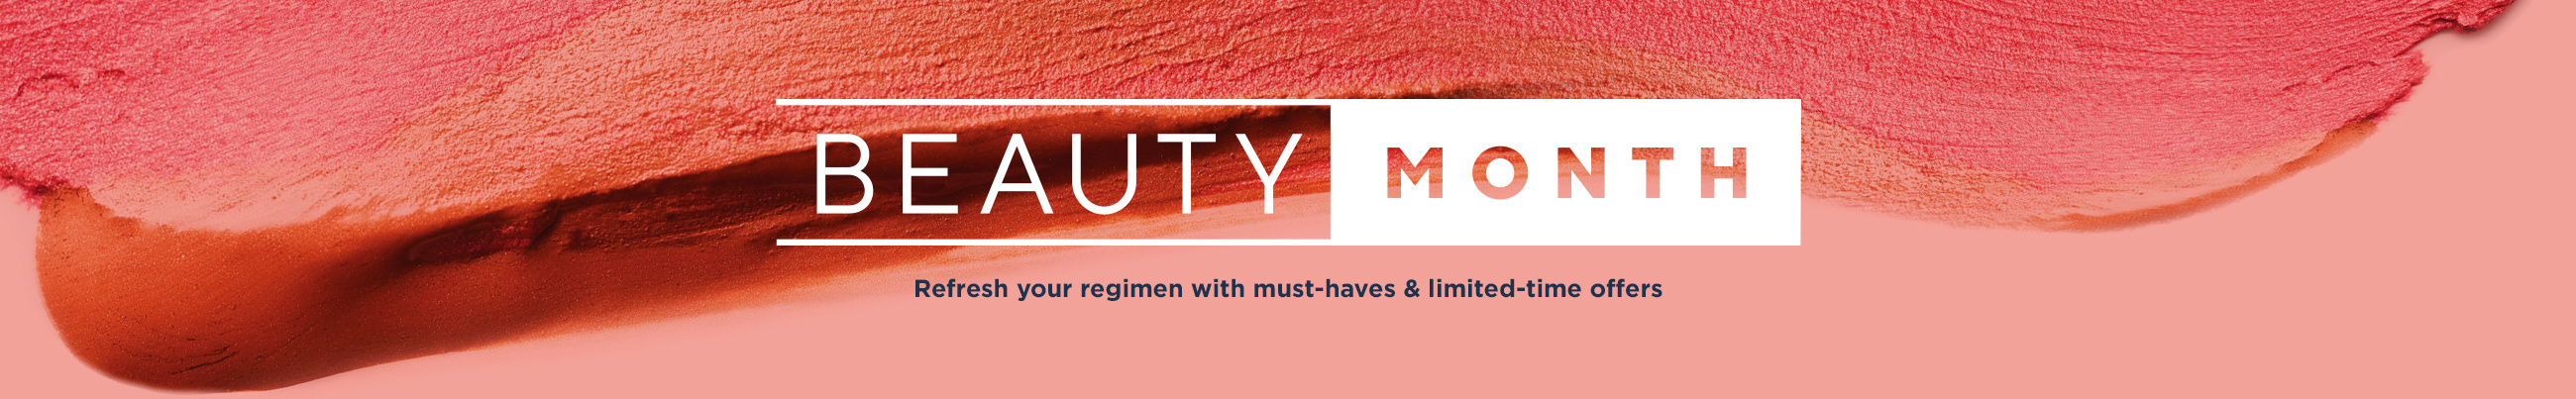 Beauty Month — Refresh your regimen with must-haves & limited-time offers